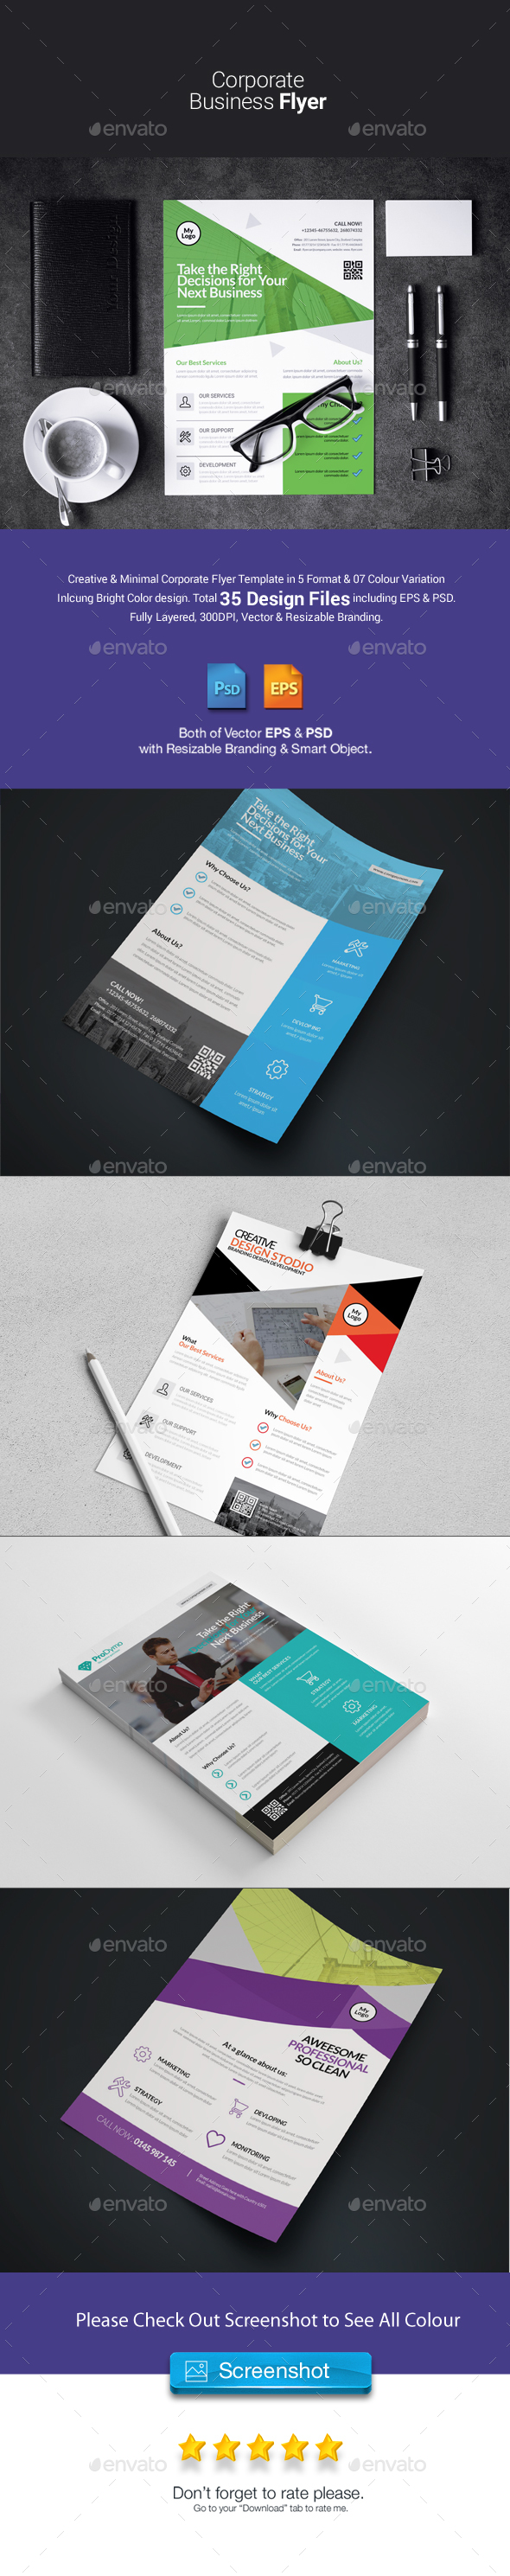 Corporate Flyer Bundle 5 in 1 - Corporate Flyers